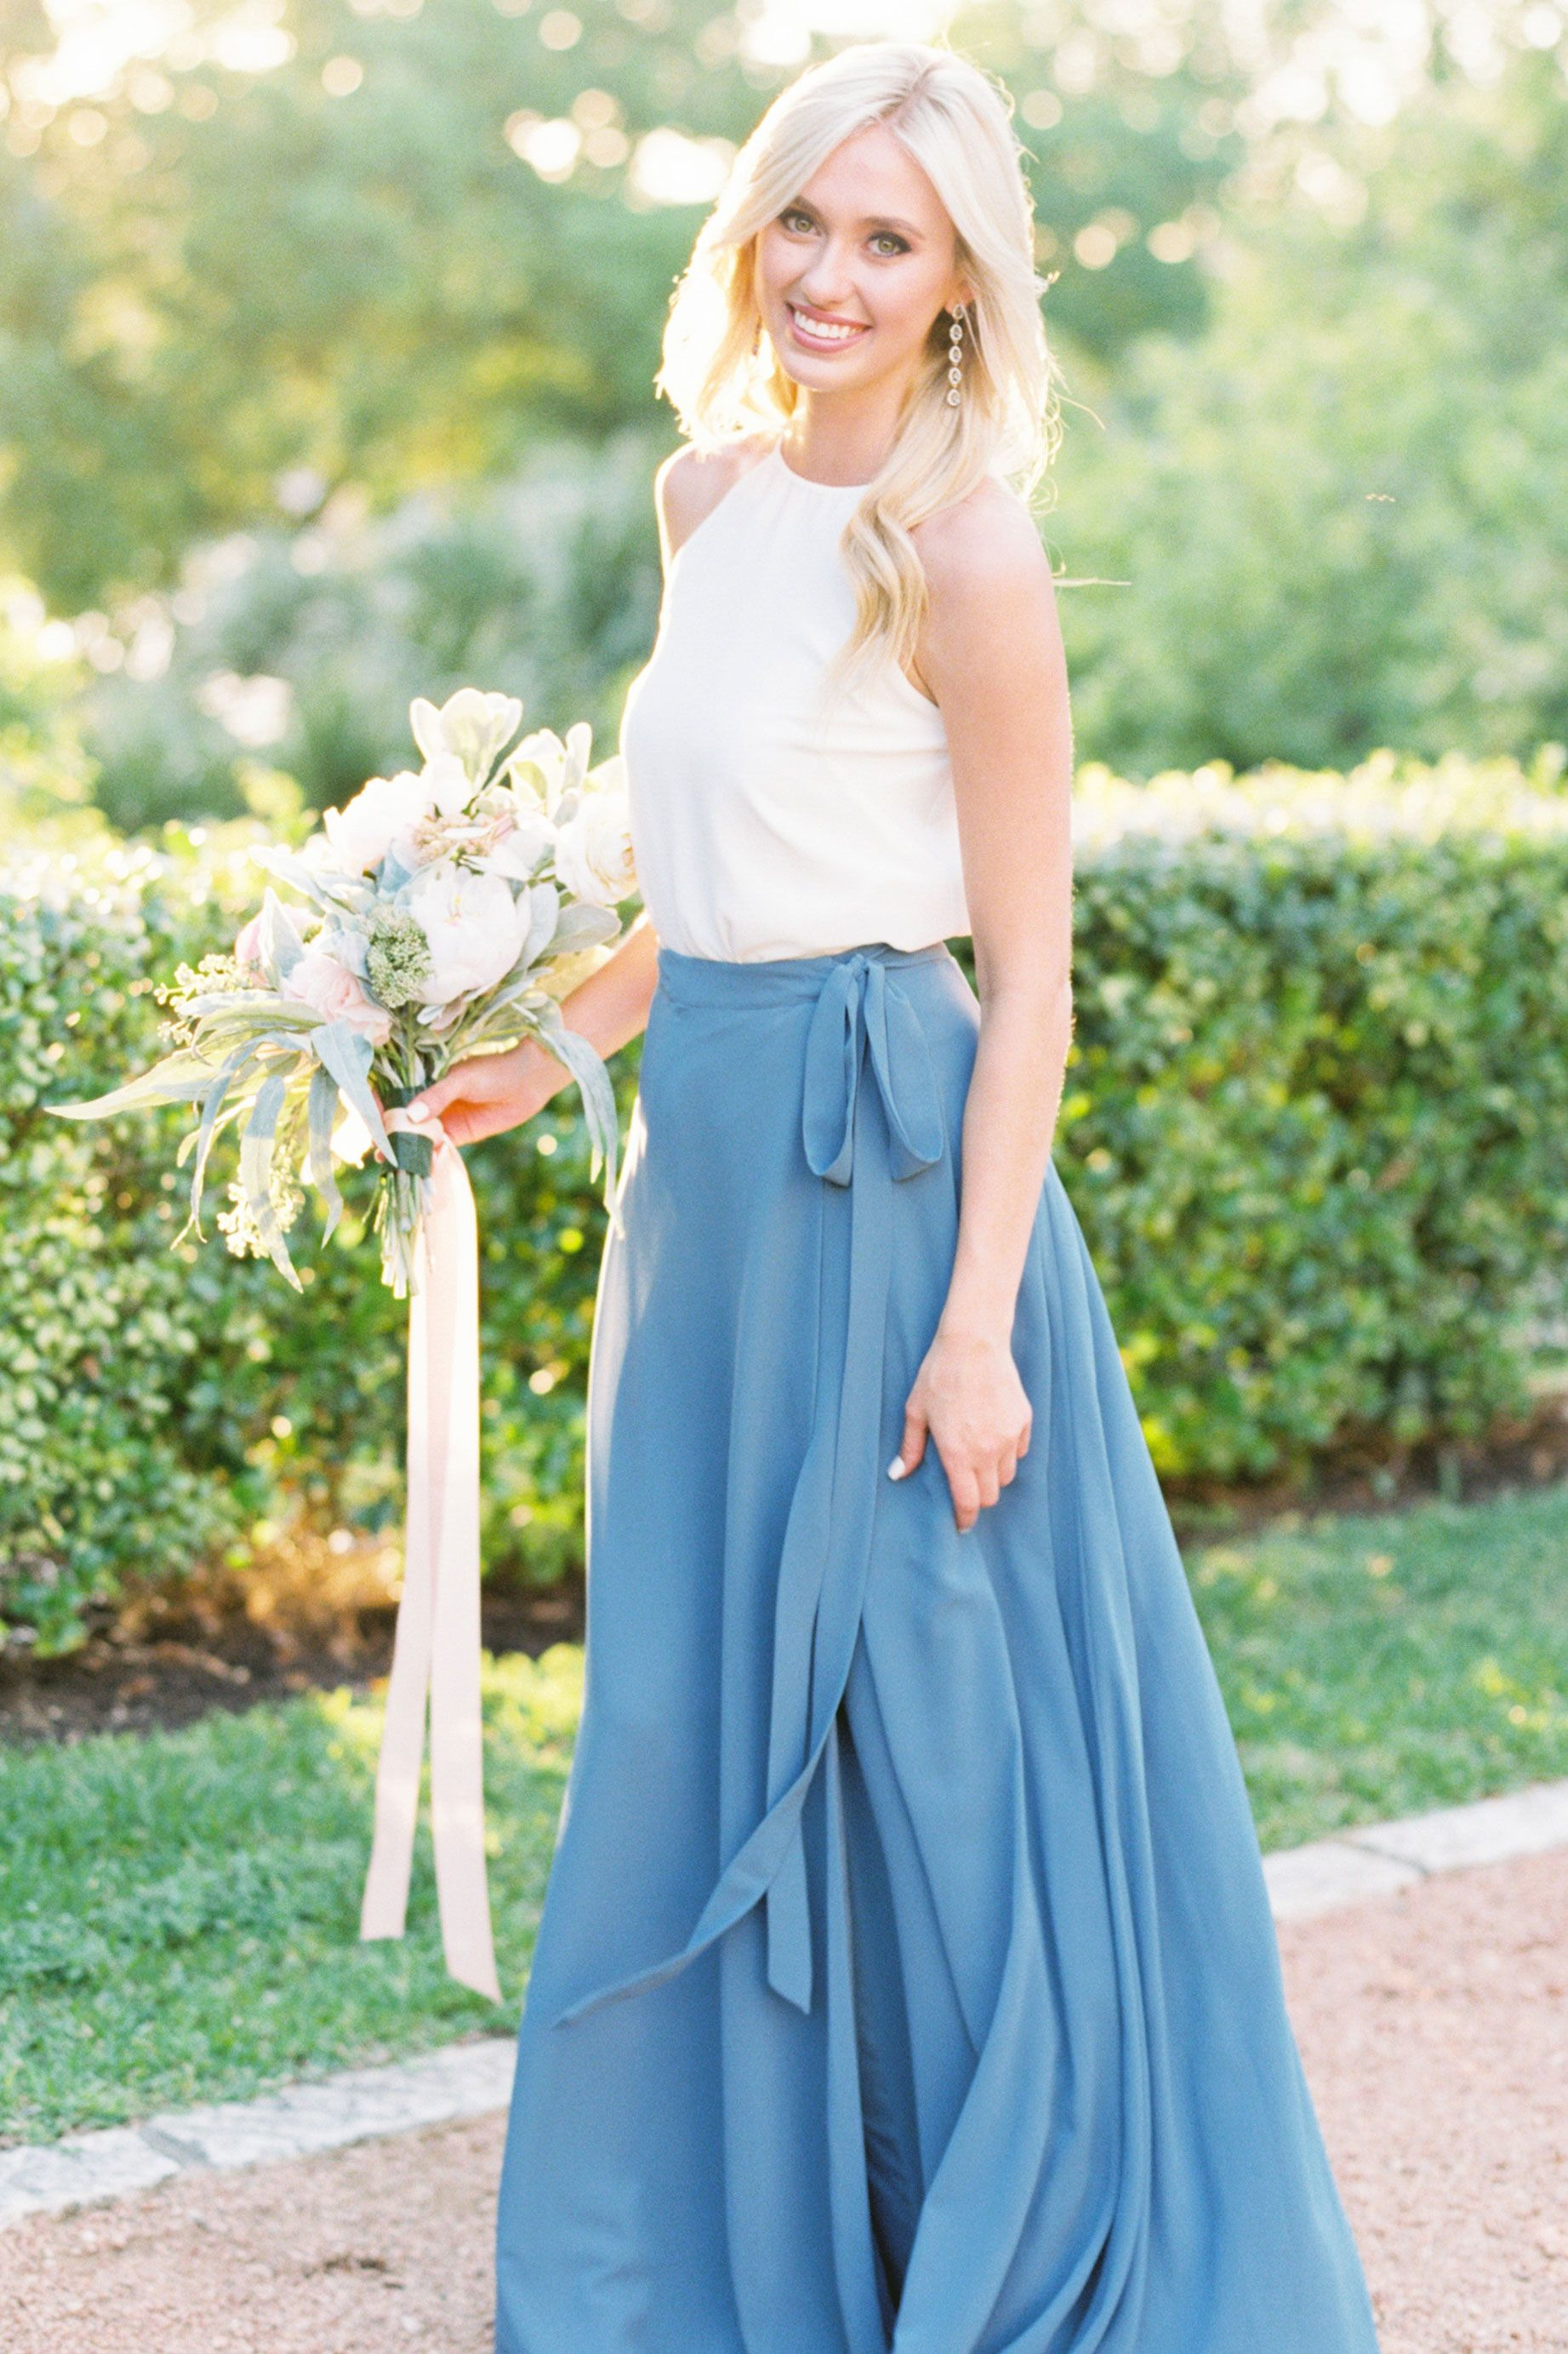 Chiffon wrap skirt bridesmaid dress #bridesmaids